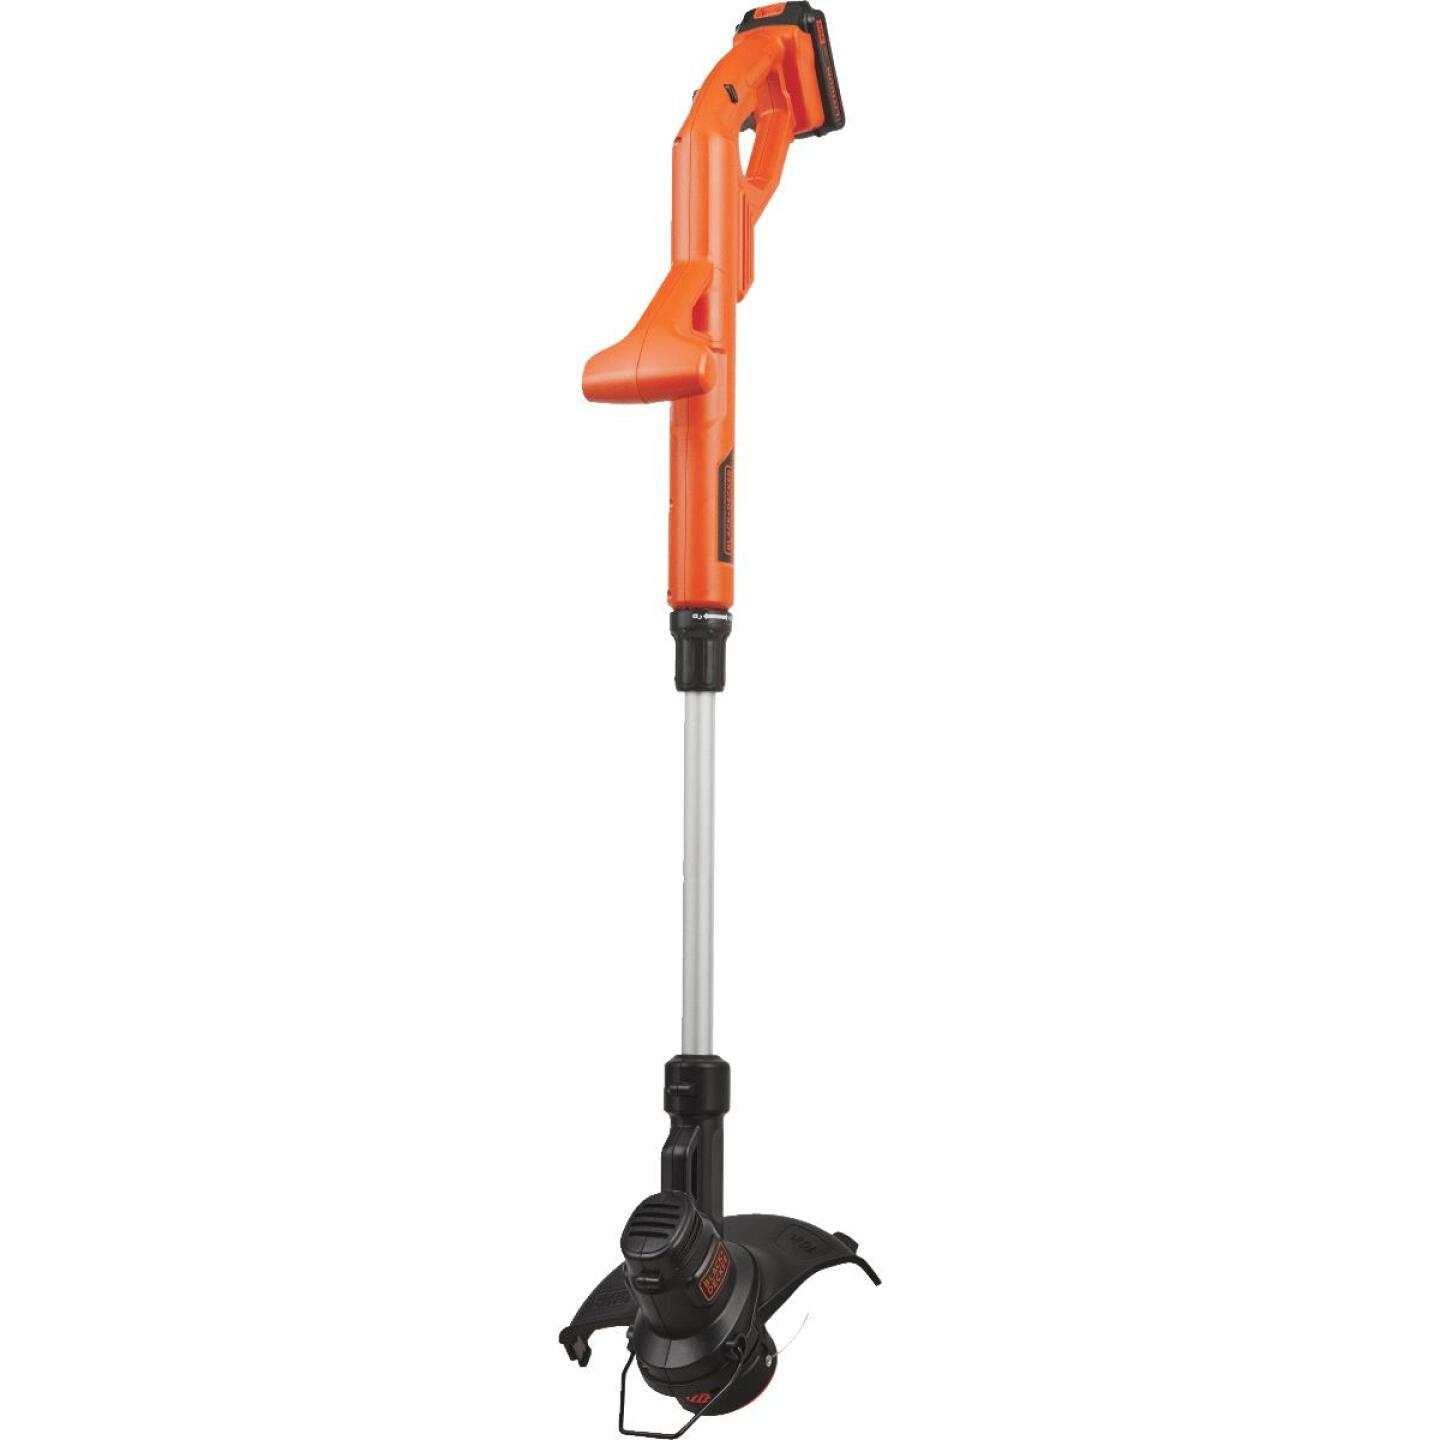 Black & Decker 20V MAX 10 In. Lithium Ion Straight Cordless String Trimmer/Edger Image 6